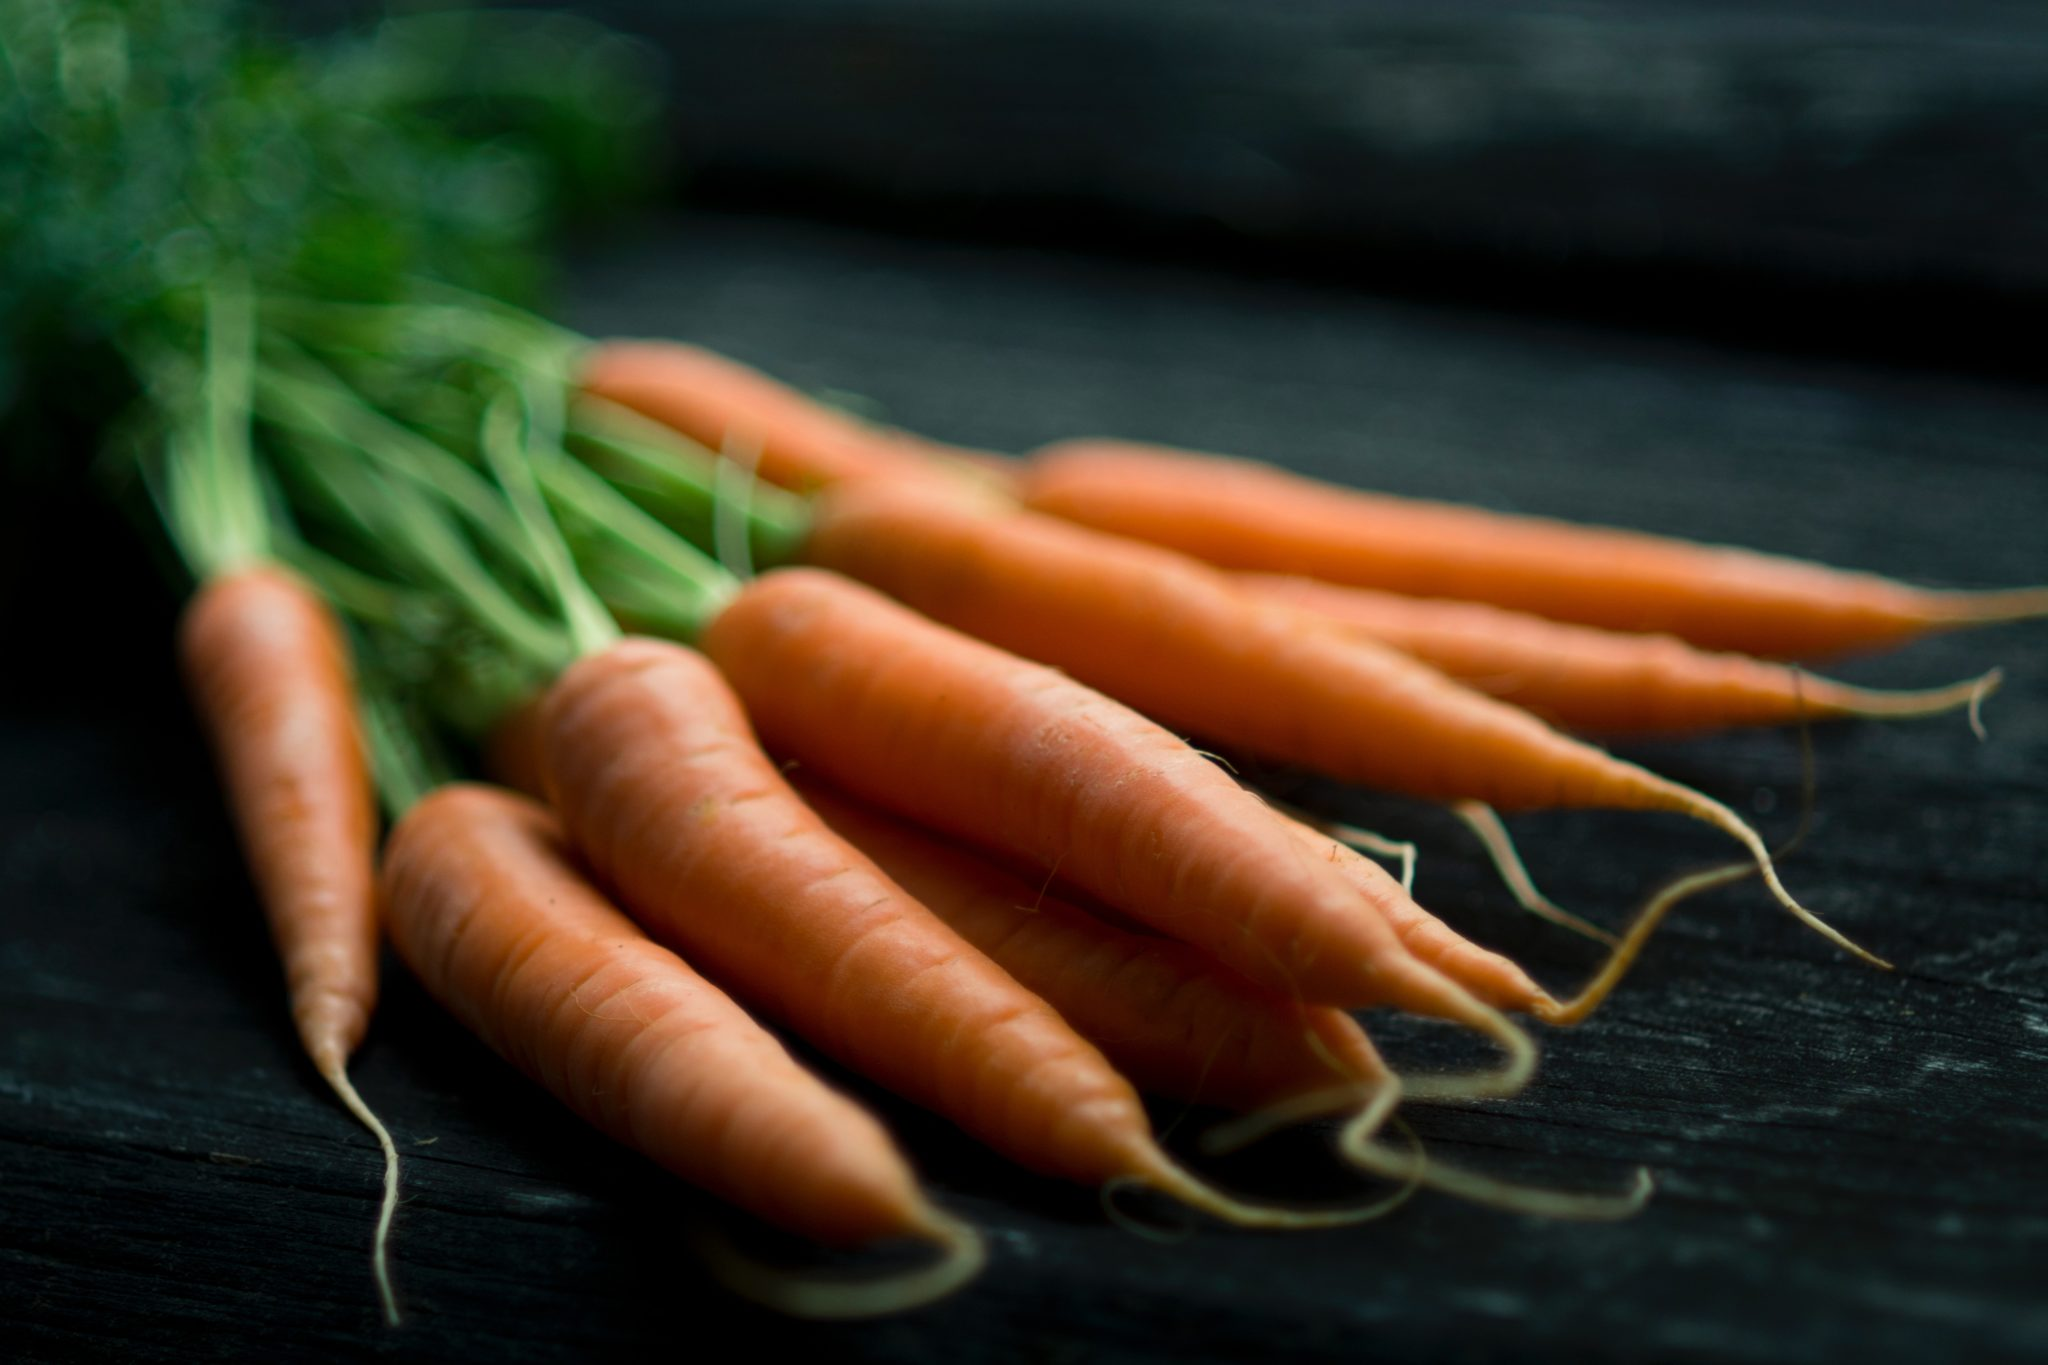 photo of carrots on a table